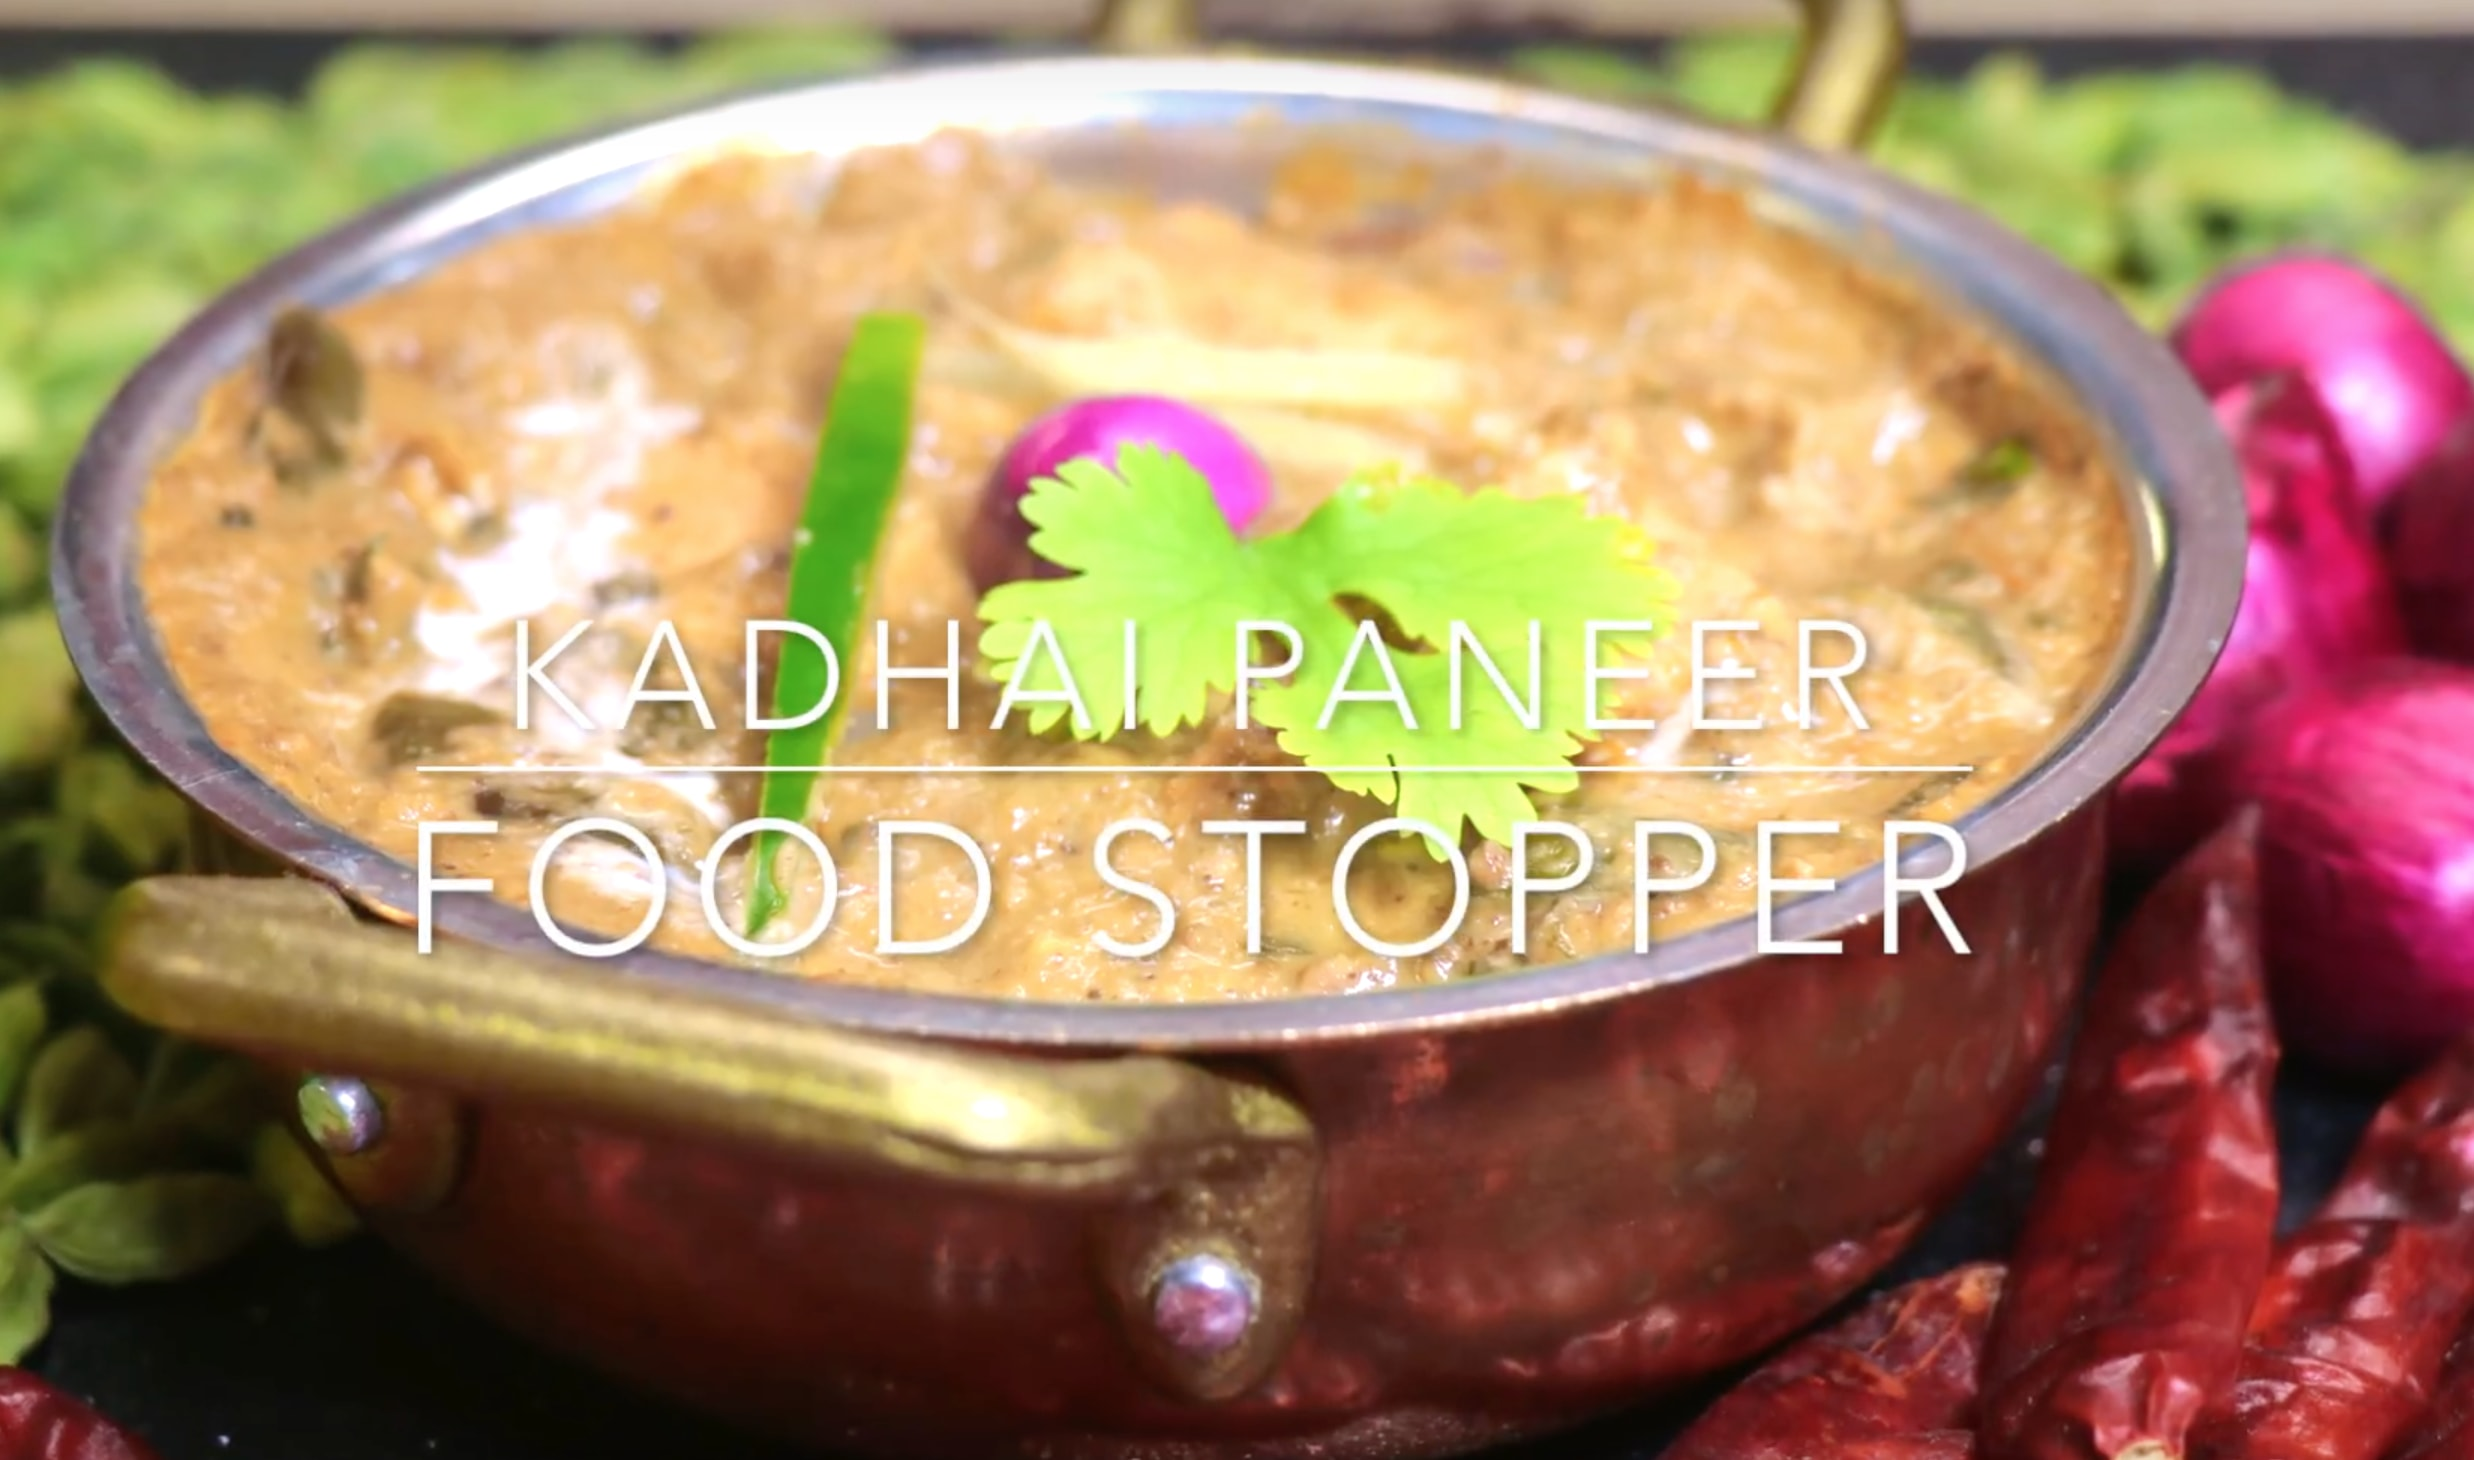 Kadai Paneer recipe is an indian food image 1 (Veg recipe of india)